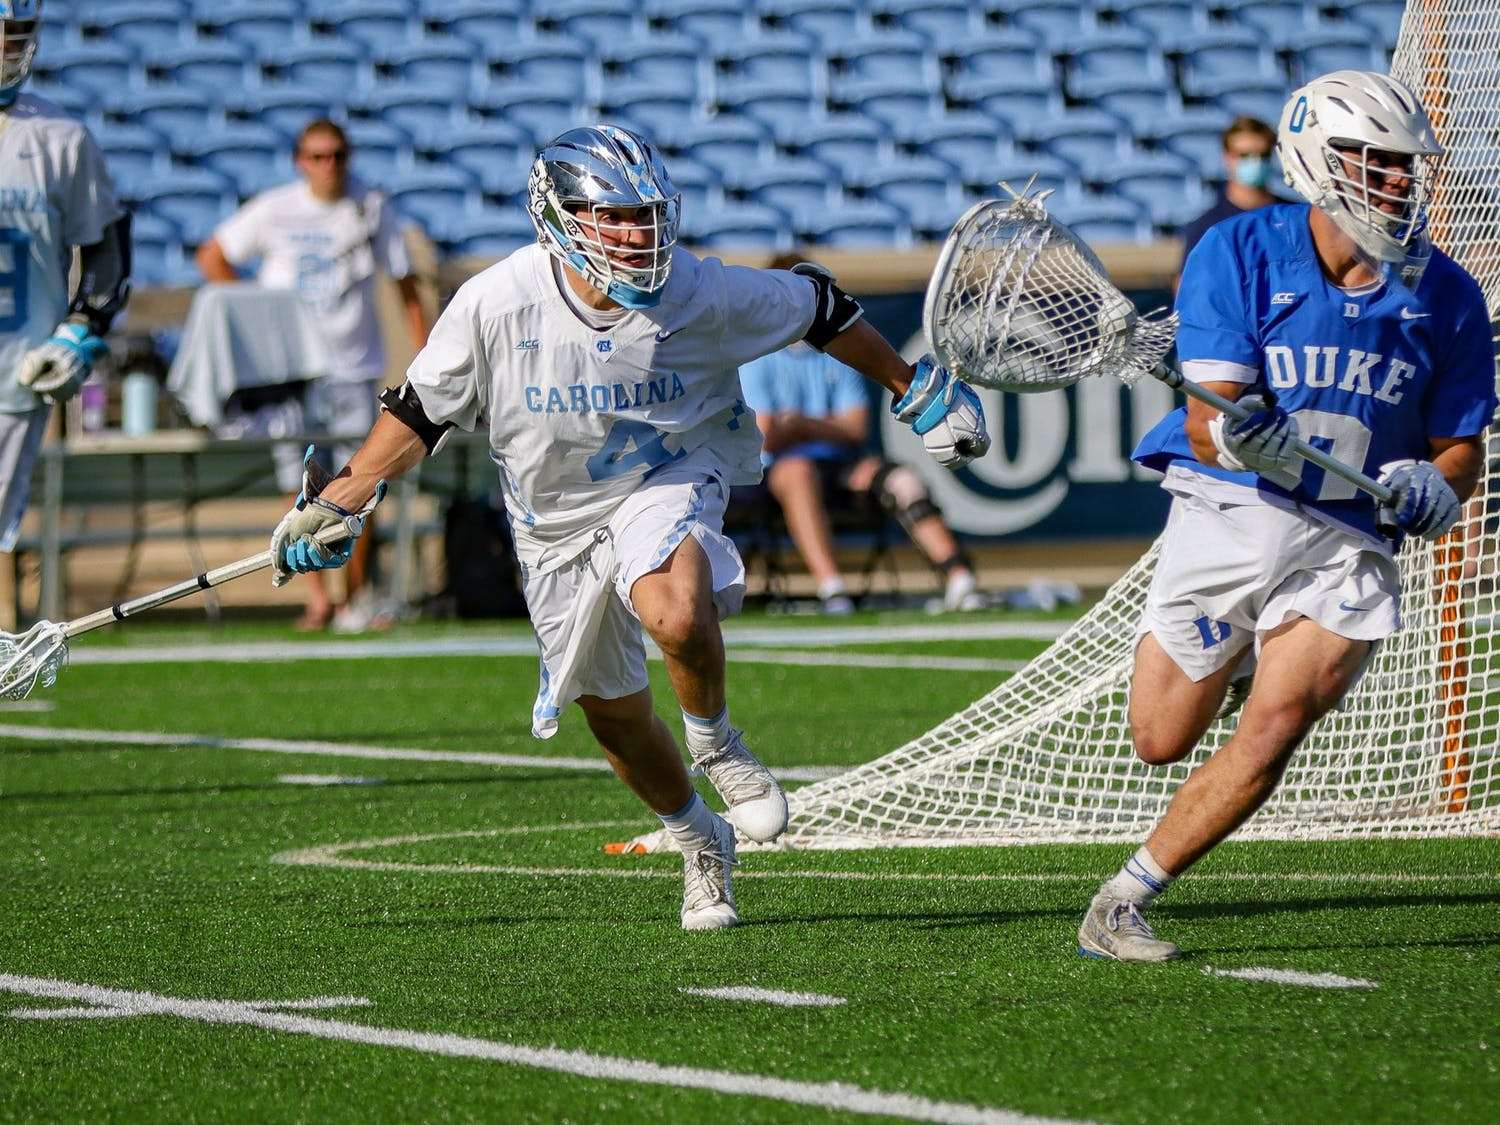 UNC senior attackman Chris Gray (4) attempts to regain possession from Duke graduate goalkeeper Mike Adler (0) during the Tar Heels' 15-12 victory against Duke on Sunday, May 2. With the victory, UNC and Duke share the 2021 ACC regular season title.